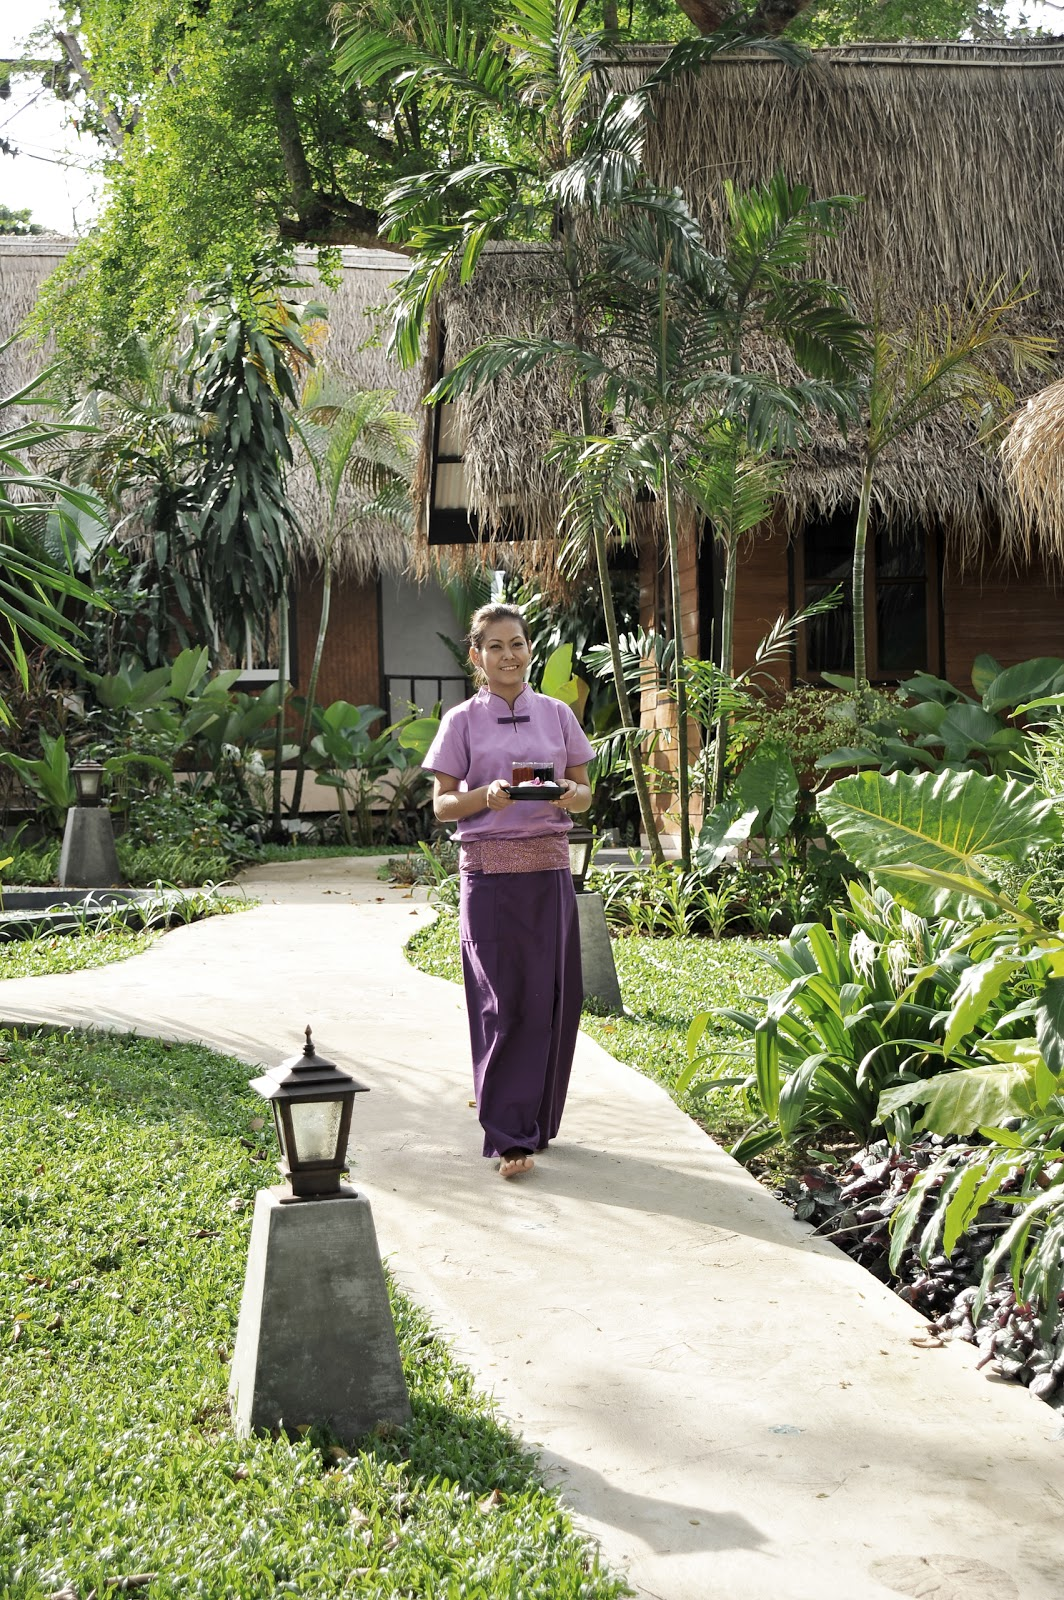 Mookda spa in Phuket